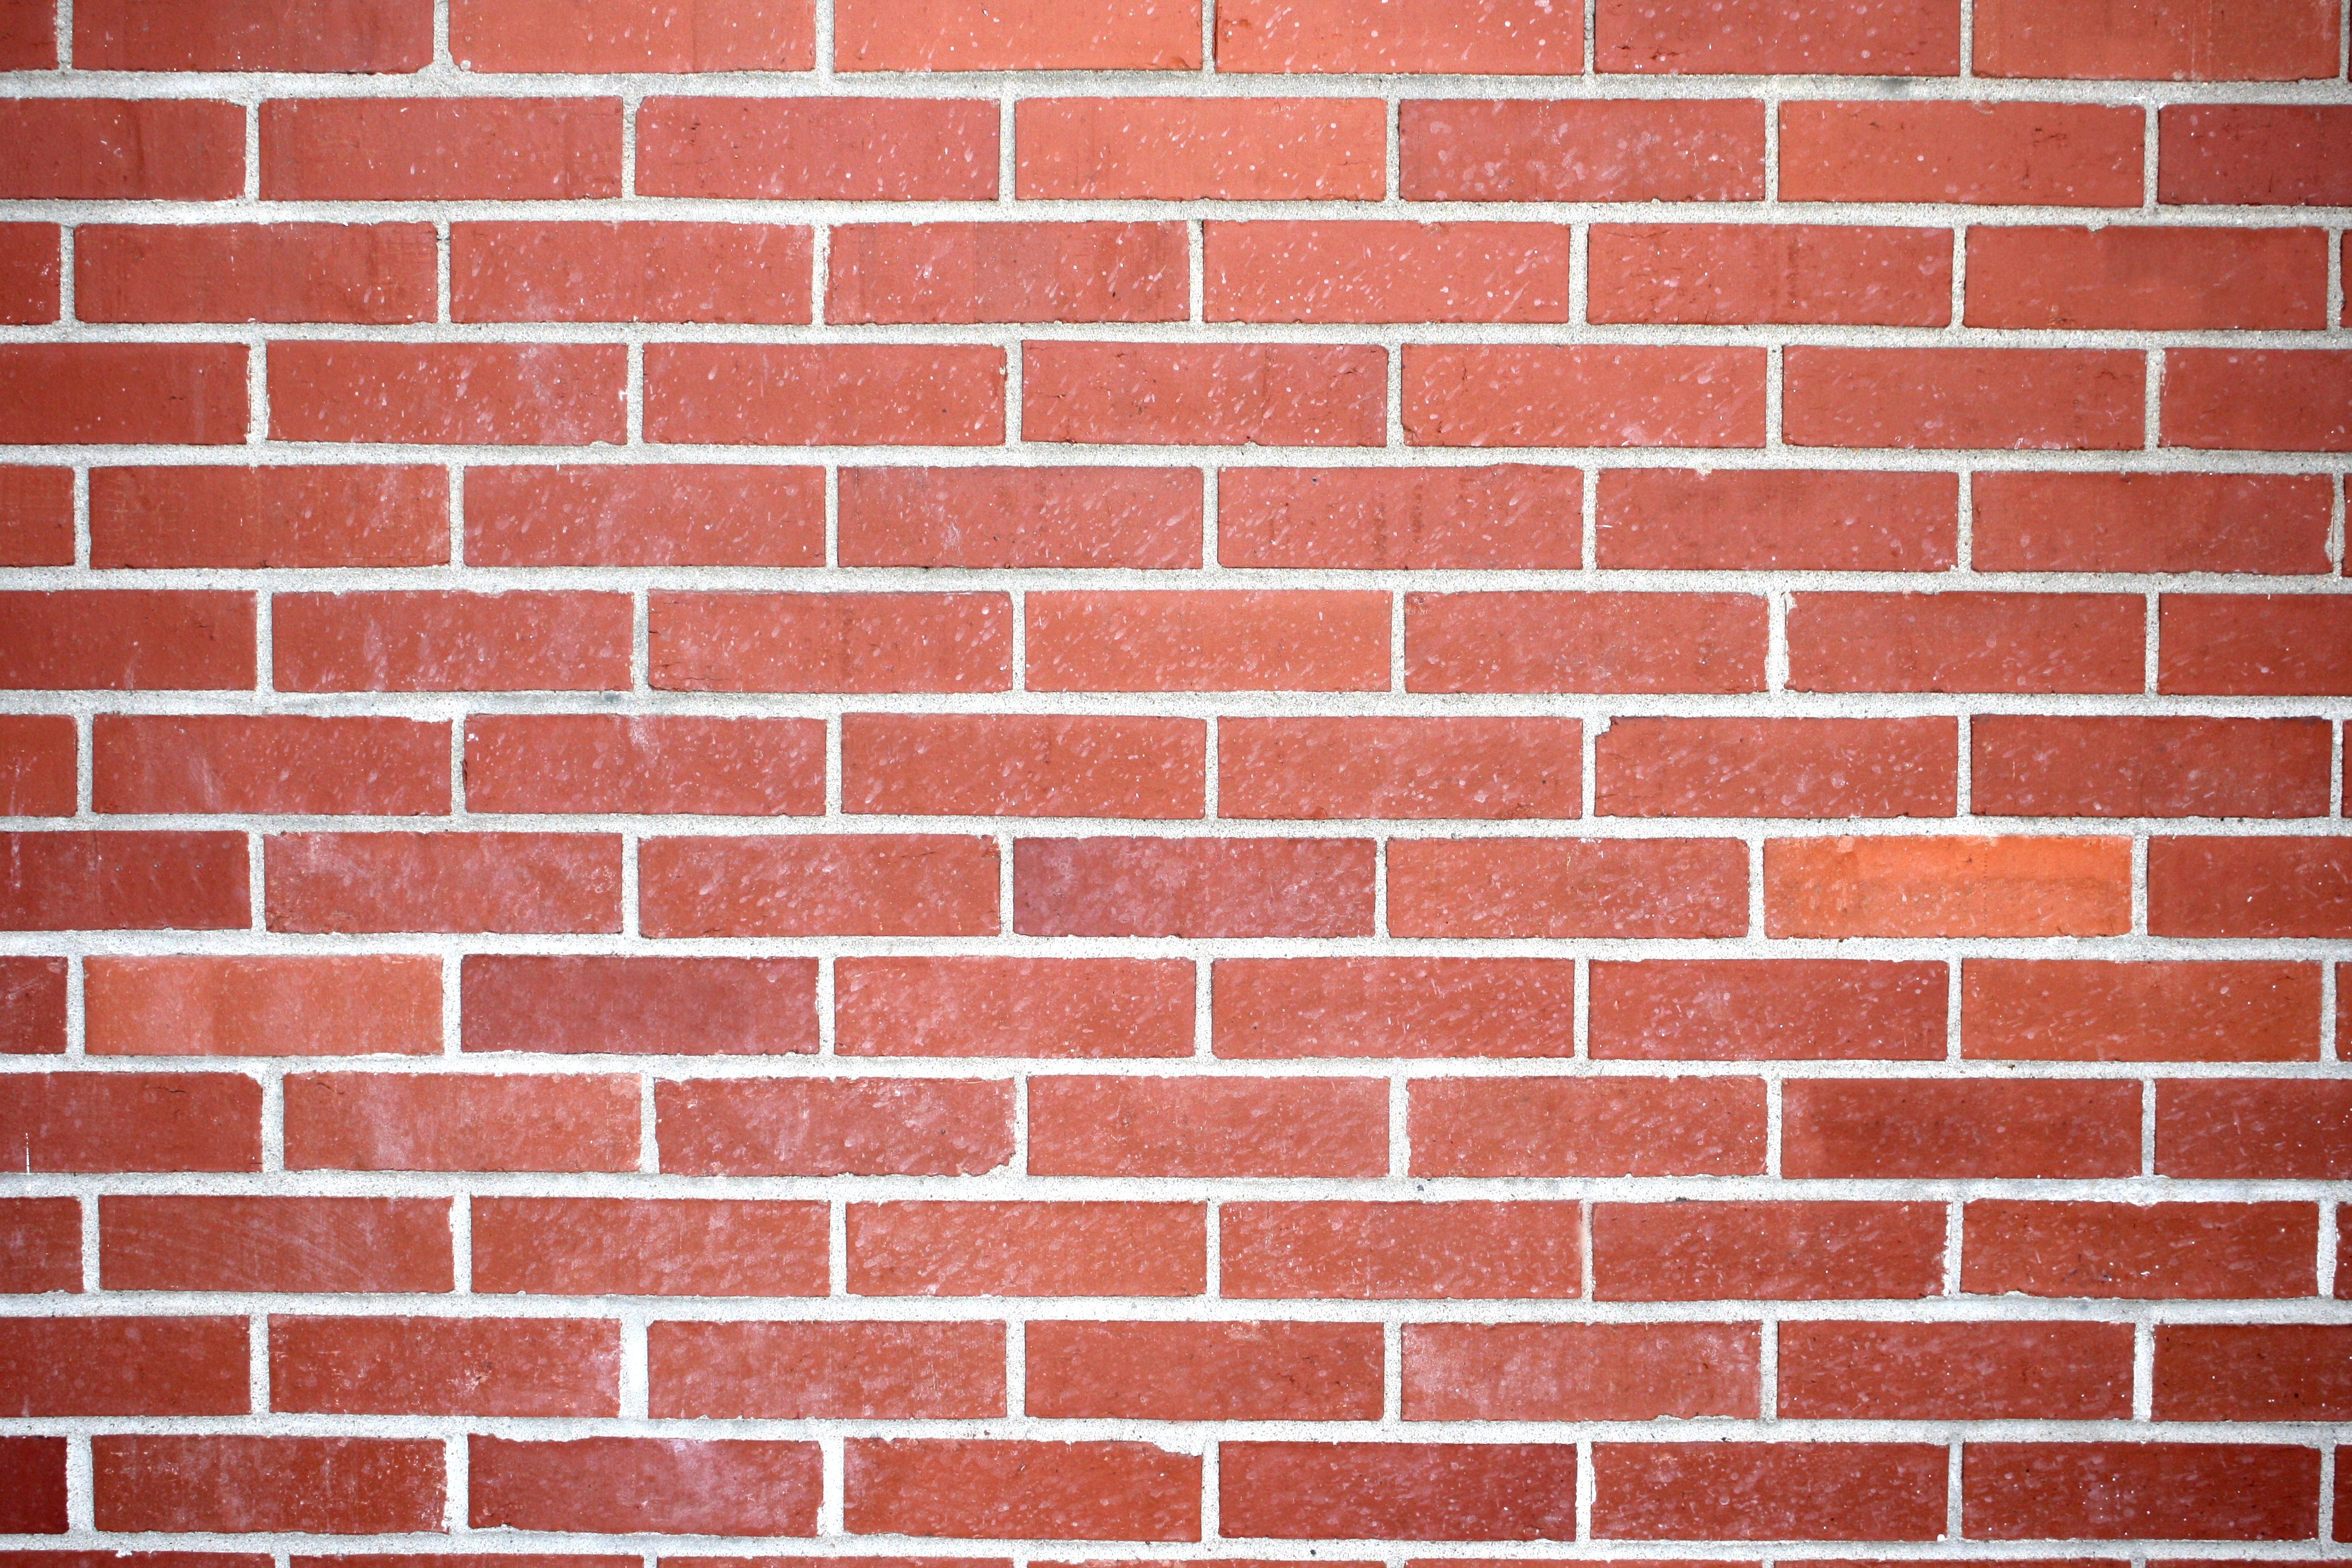 red-brick-wall-texture.jpg